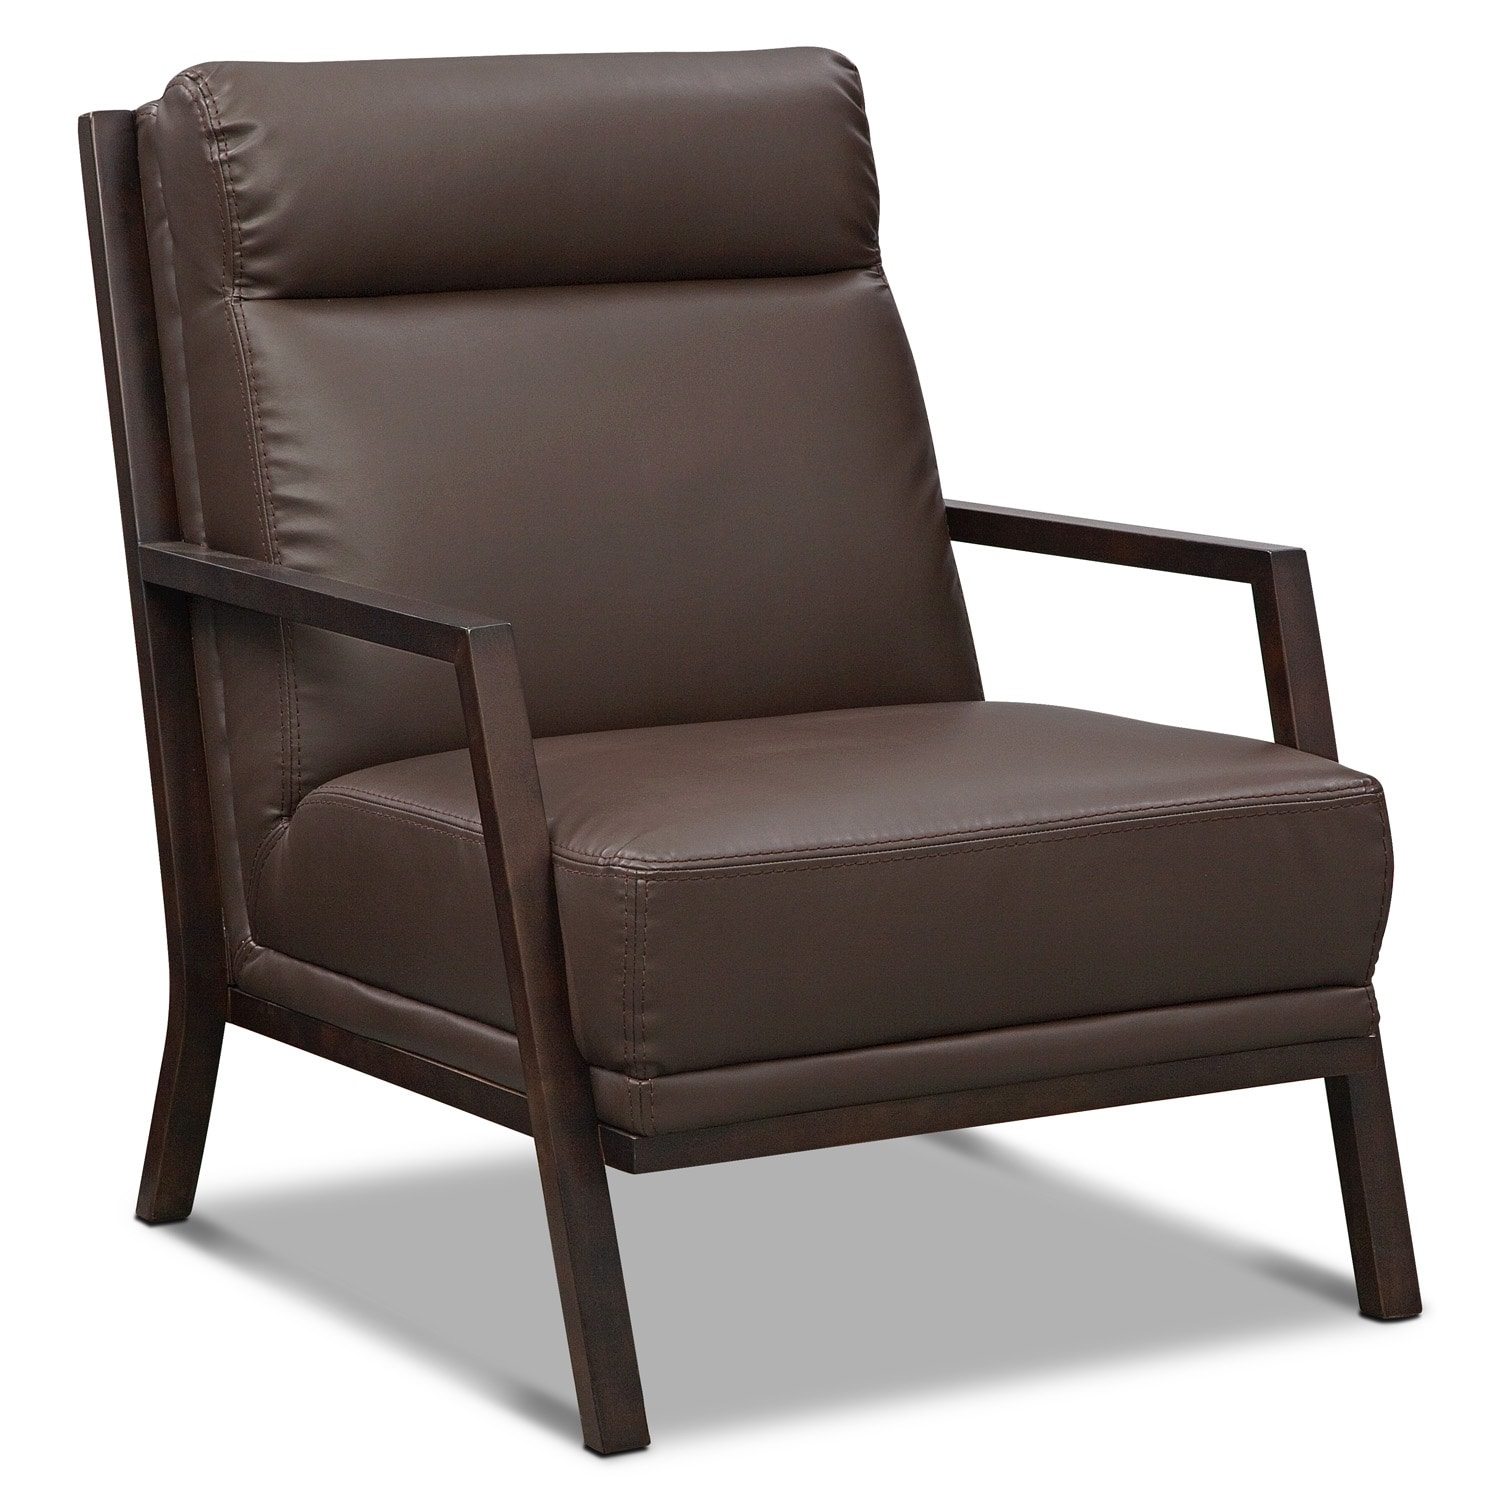 Living Room Furniture - Bowery Accent Chair